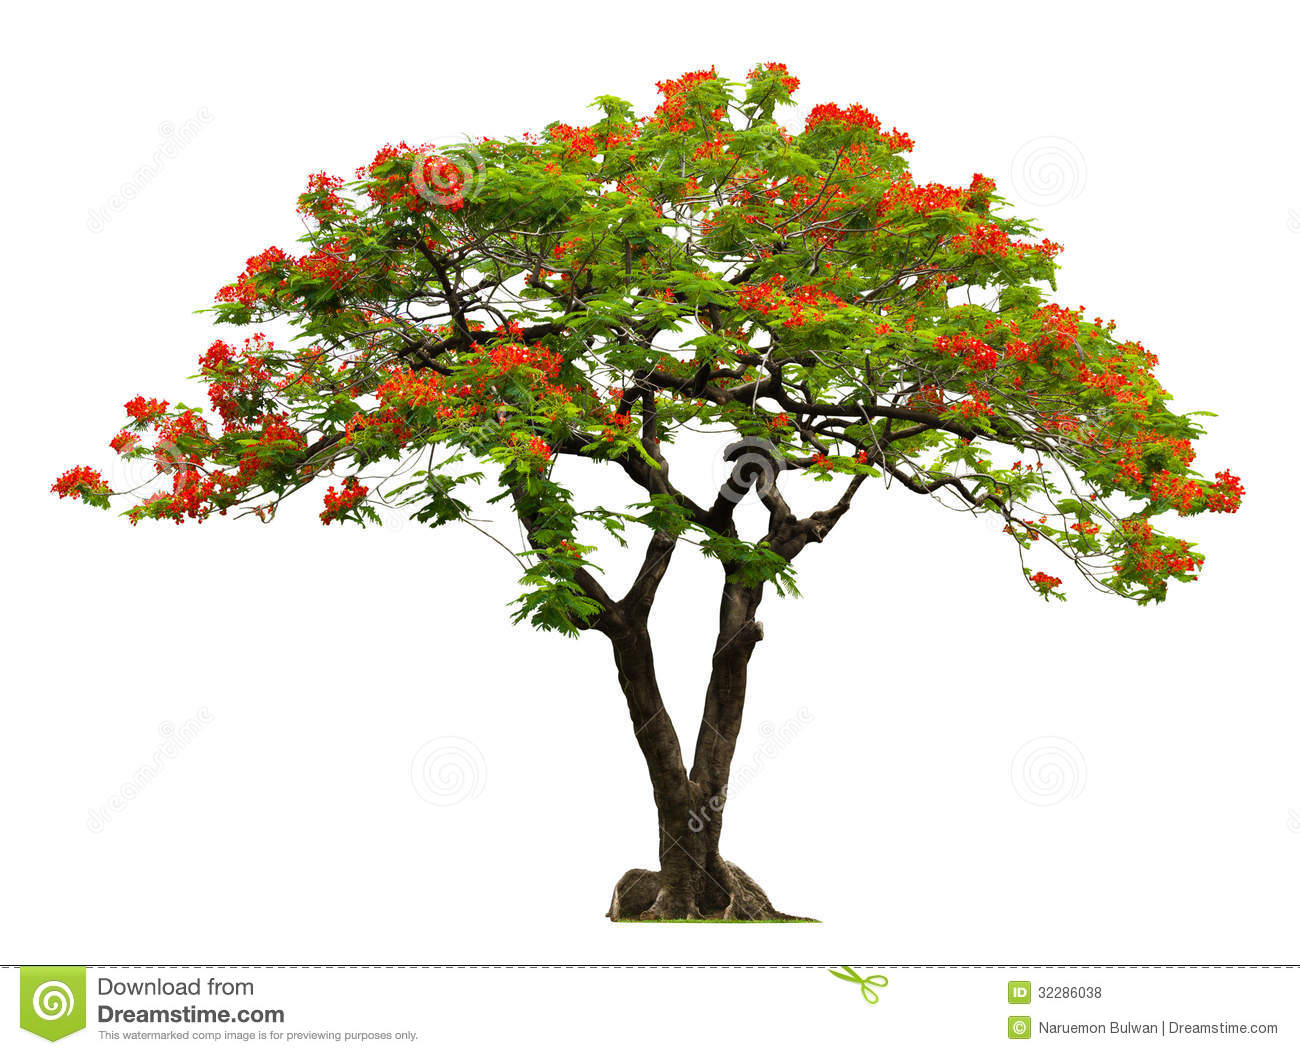 Royal Poinciana Tree With Red Flower Royalty Free Stock